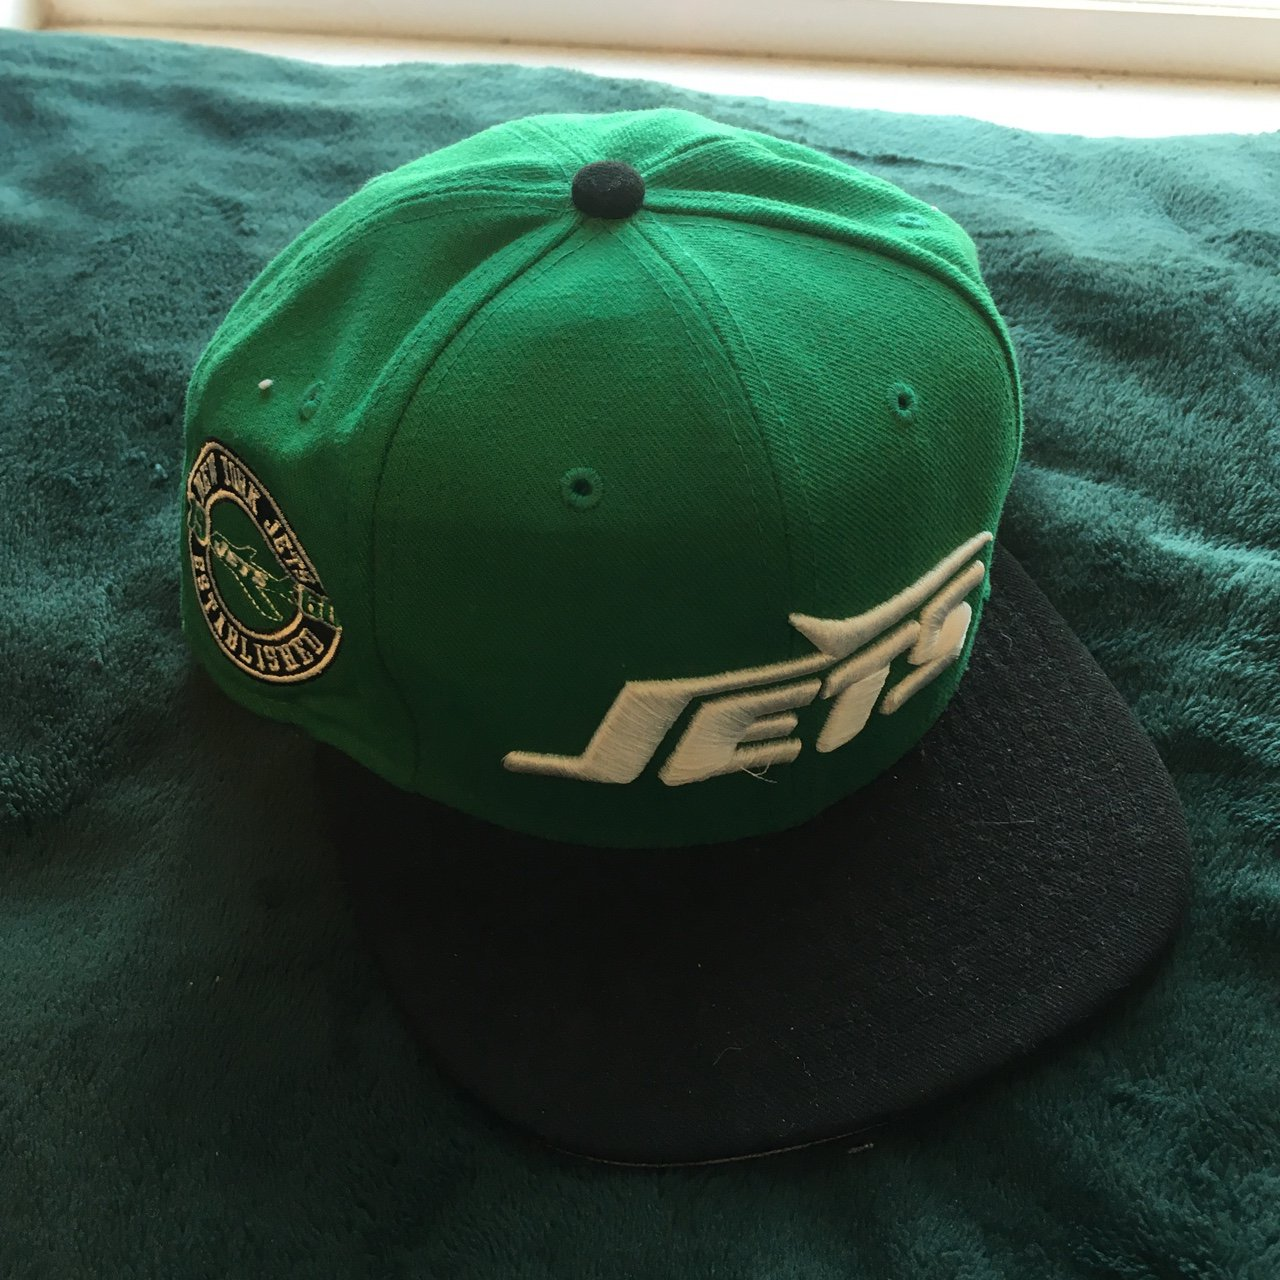 1507a6e3a New Era x 9FIFTY NFL New York Jets snapback for  9Fifty  NFL - Depop